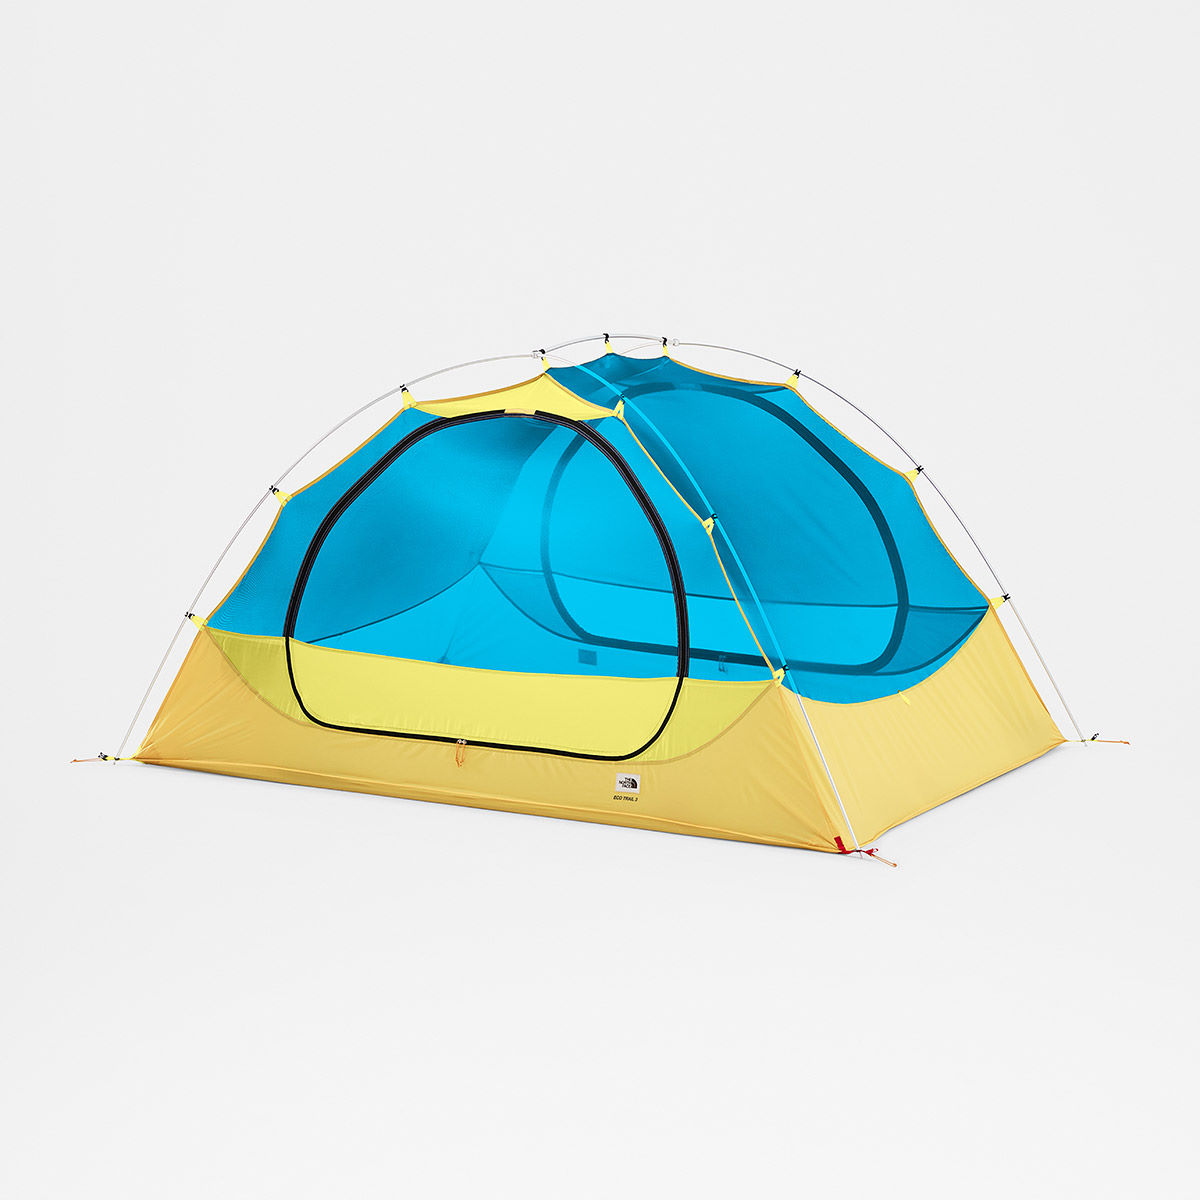 The North Face The North Face Talus Eco 3 Person Tent   Tents